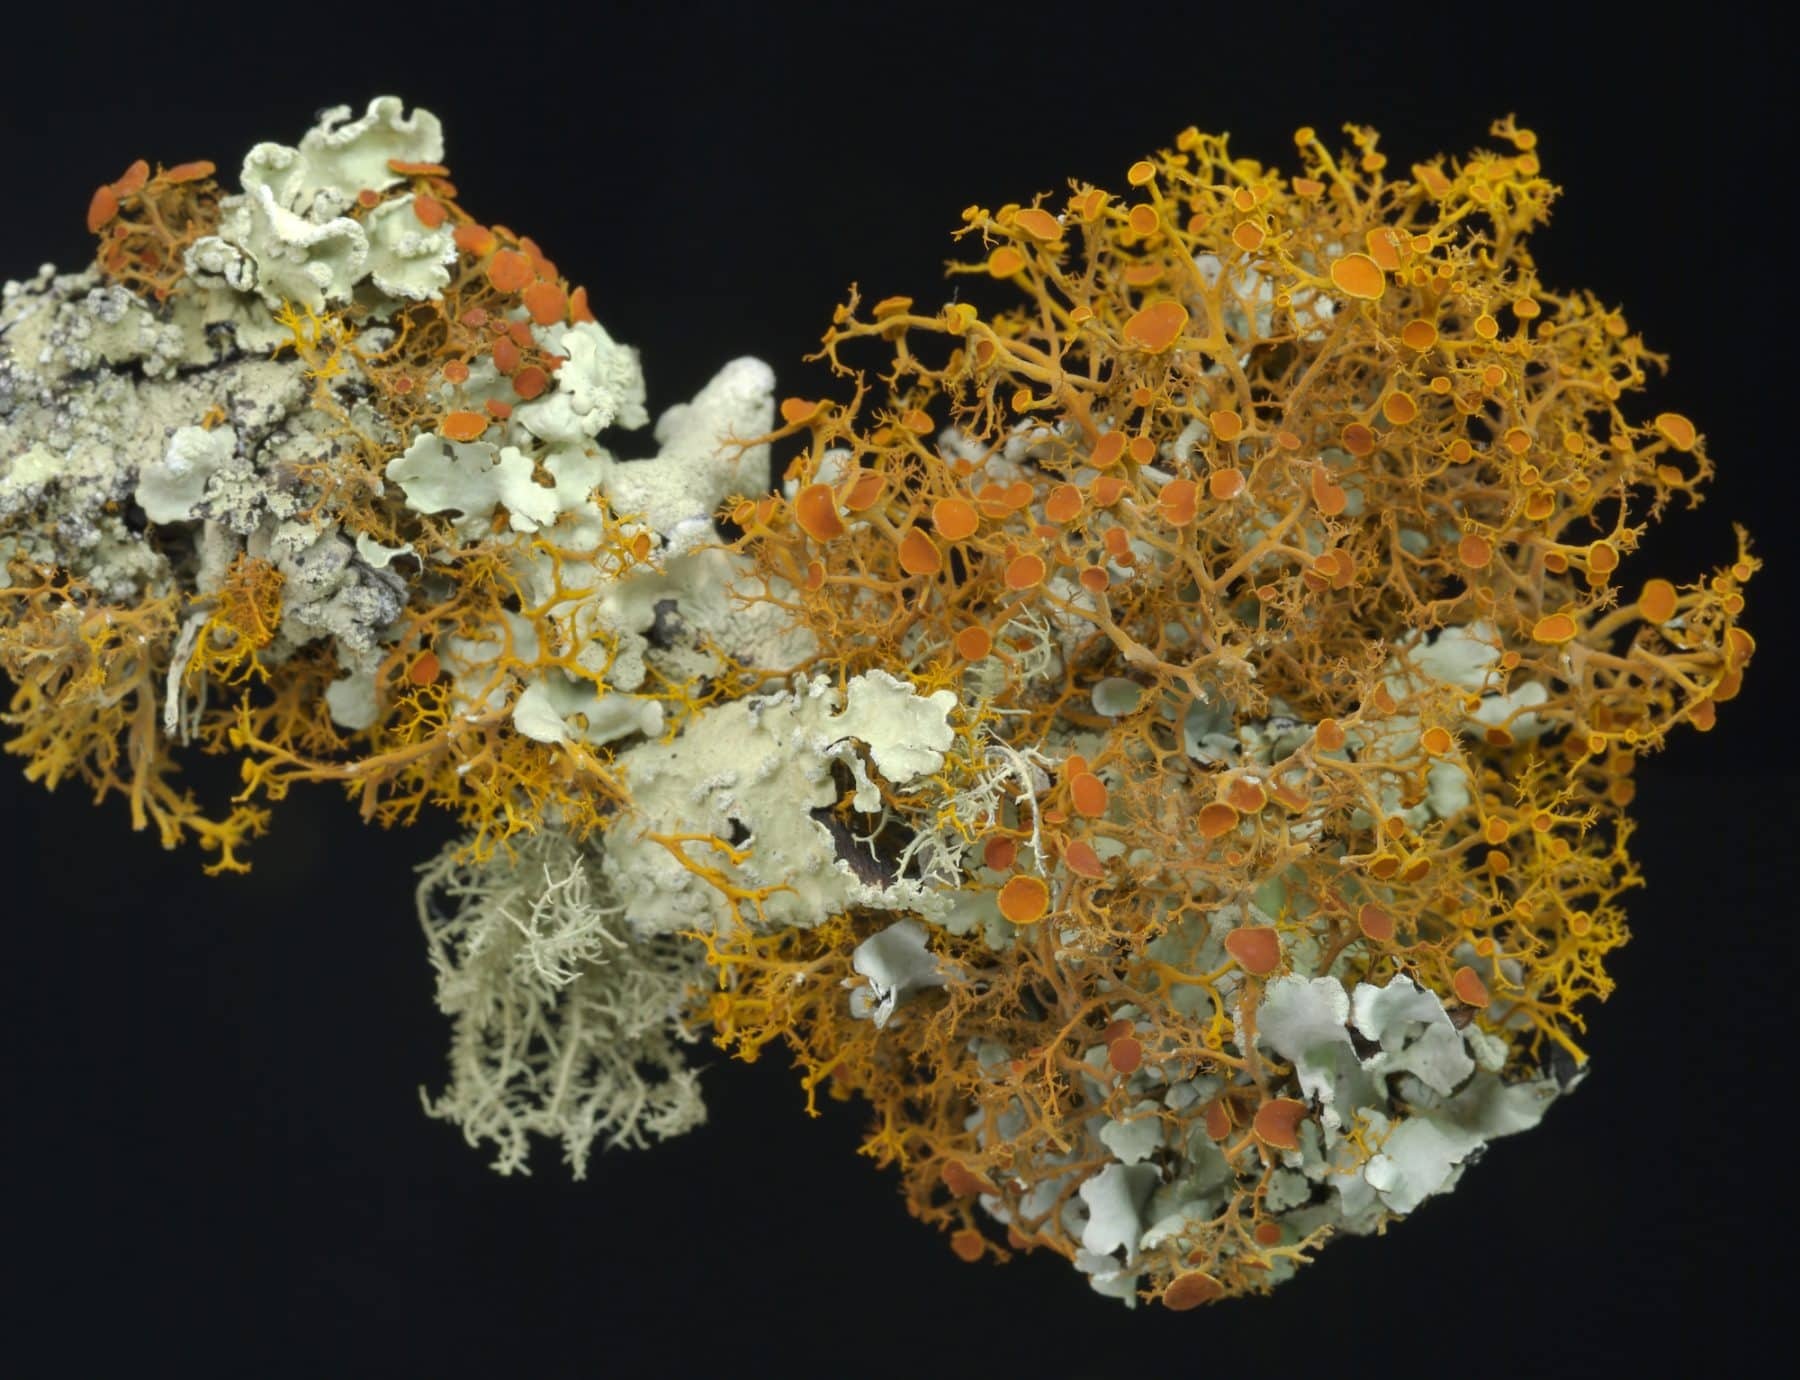 Image: lichen in orange and green growing in many shapes